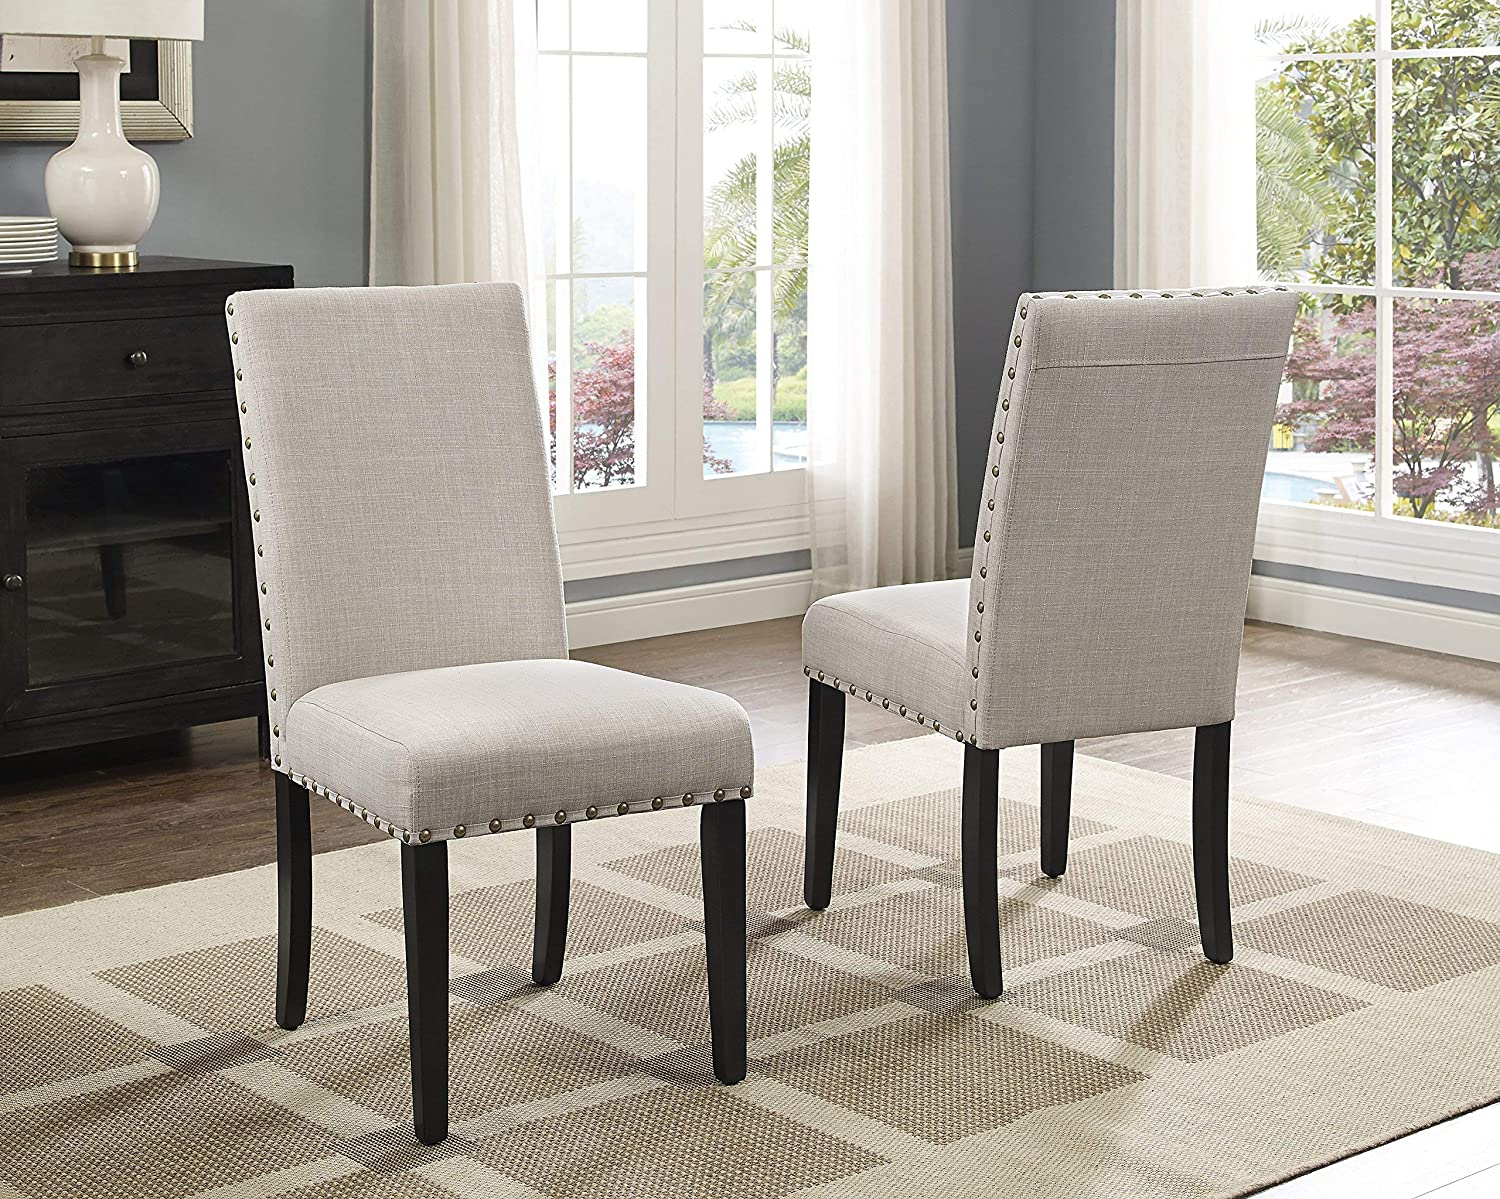 Tan Roundhill Biony bluee Fabric Dining Chairs with Nailhead Trim, Set of 2